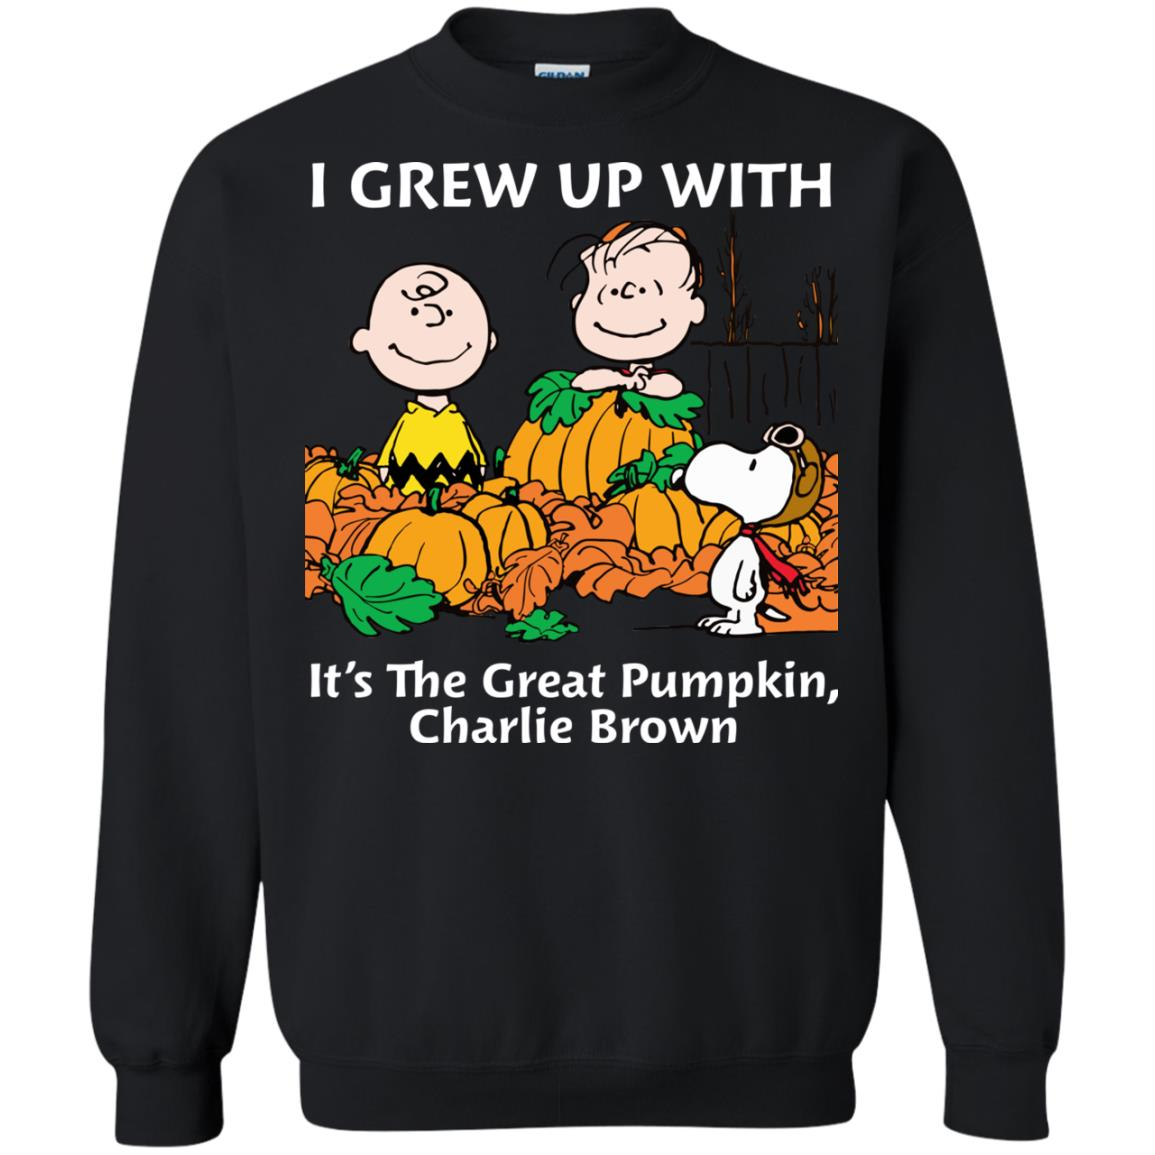 image 272 - Charlie Brown: I grew up with It's The Great Pumpkin shirt, sweater